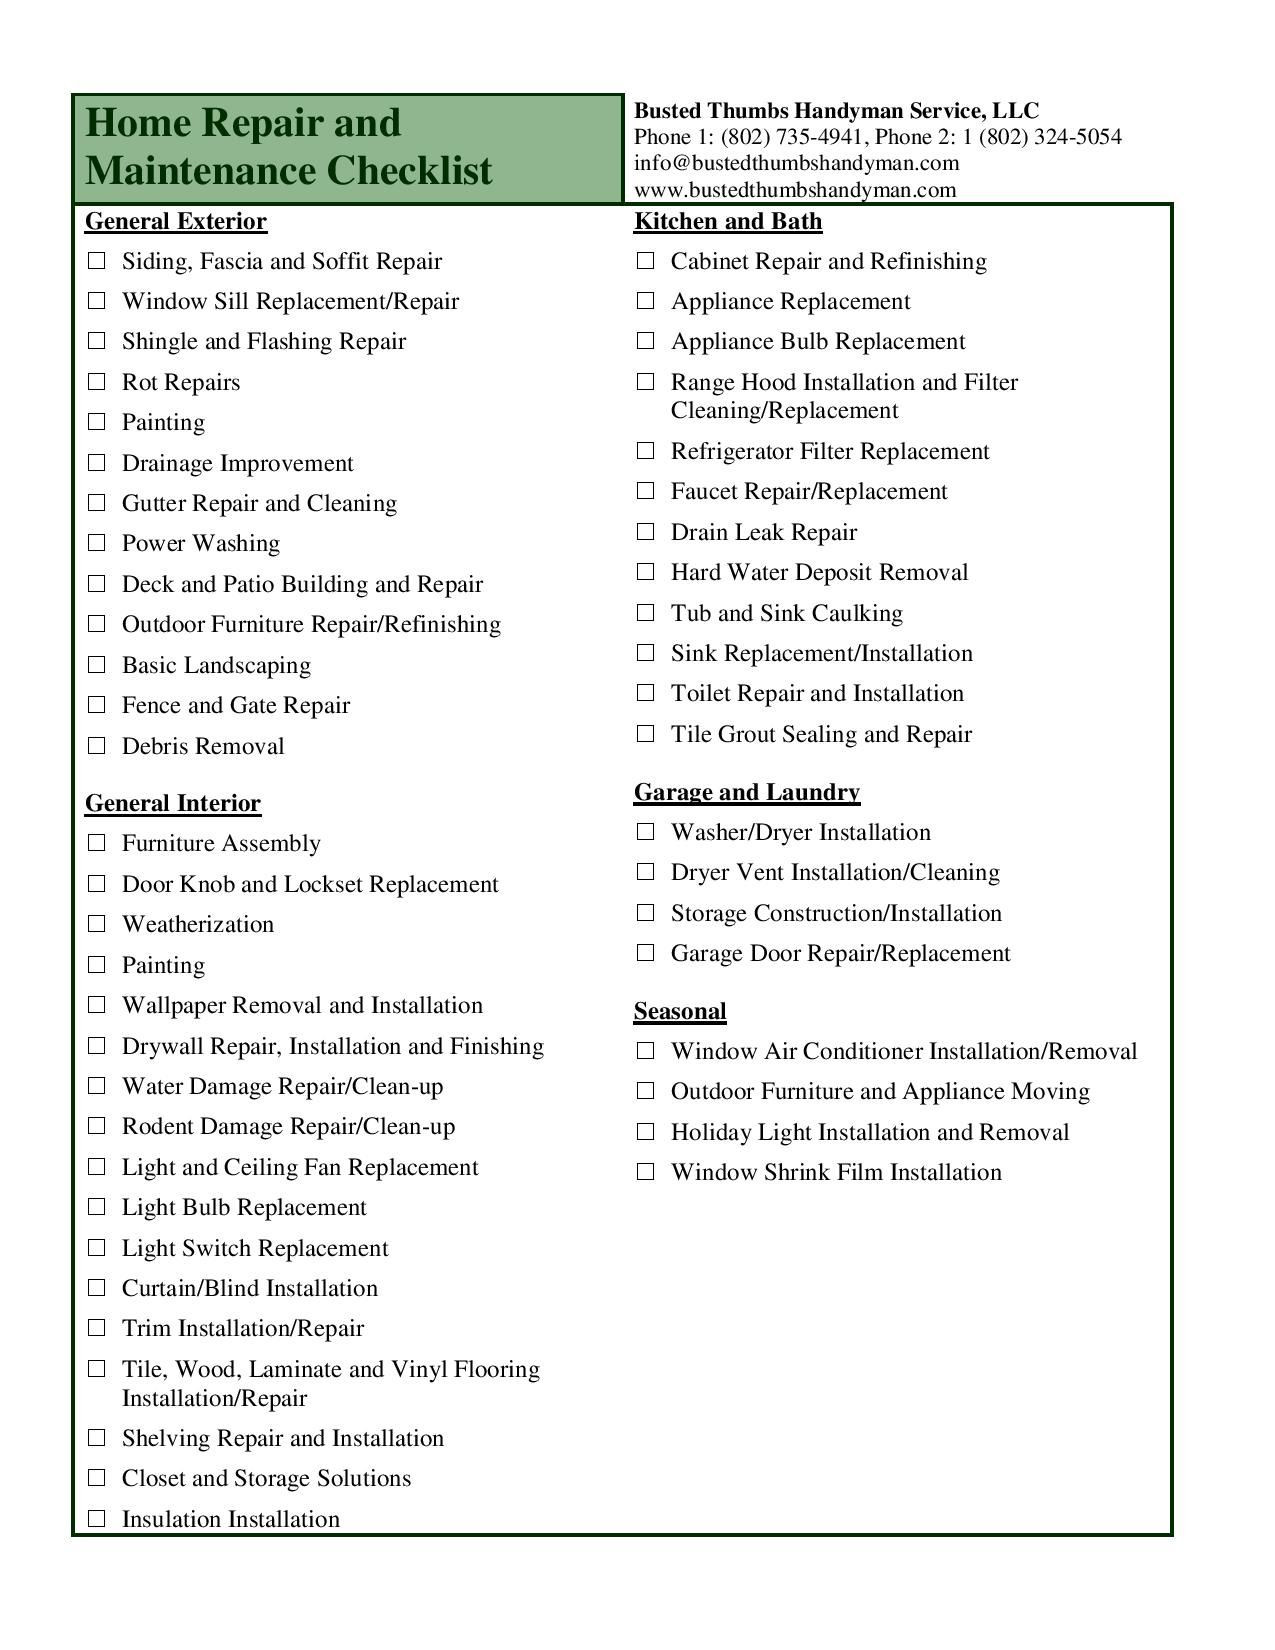 Kitchen Renovation Checklist Template